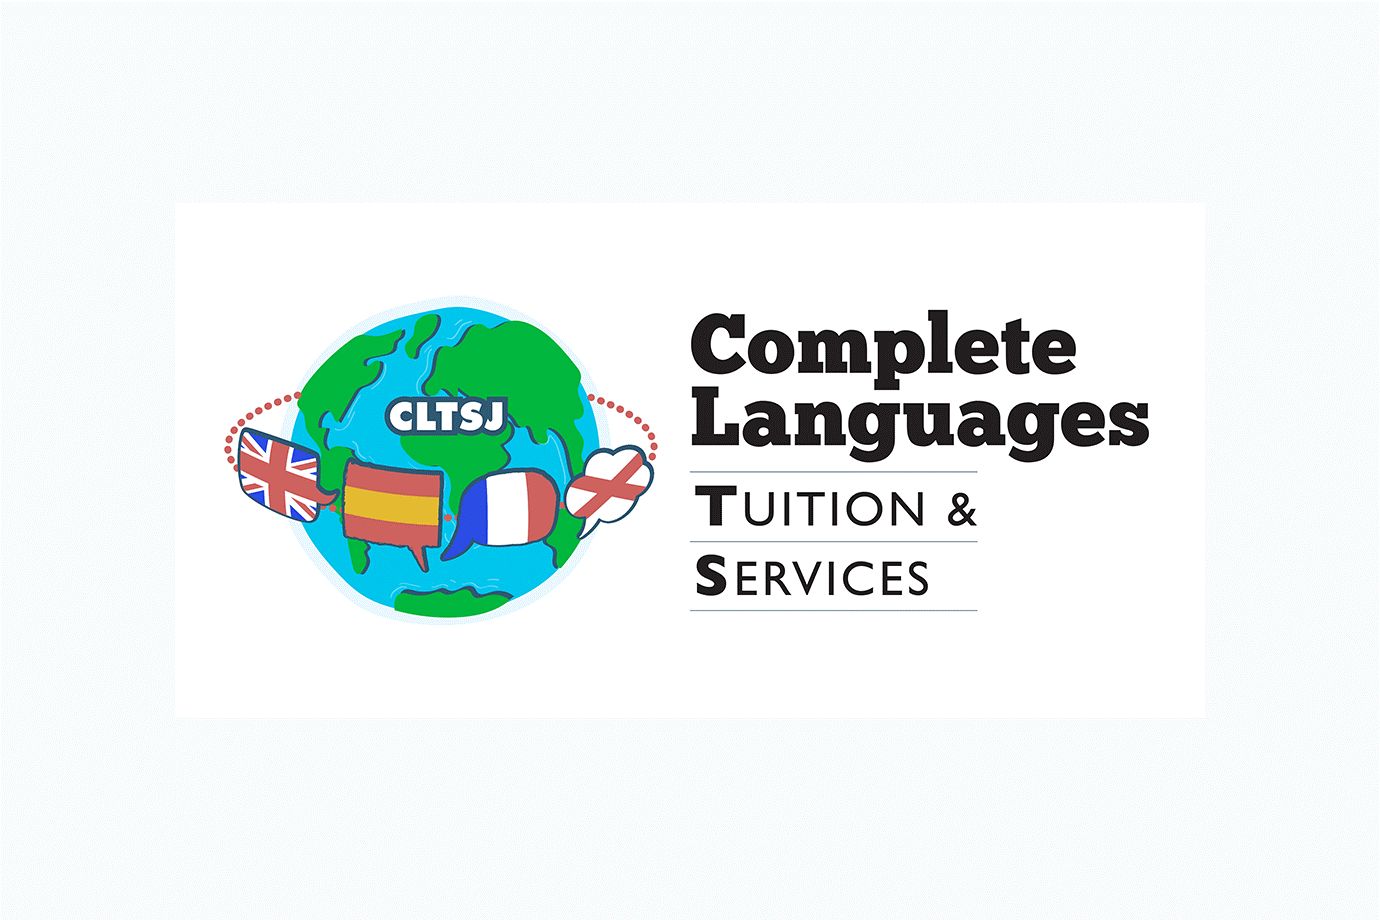 Complete Languages Tuition & Services - Jersey logo